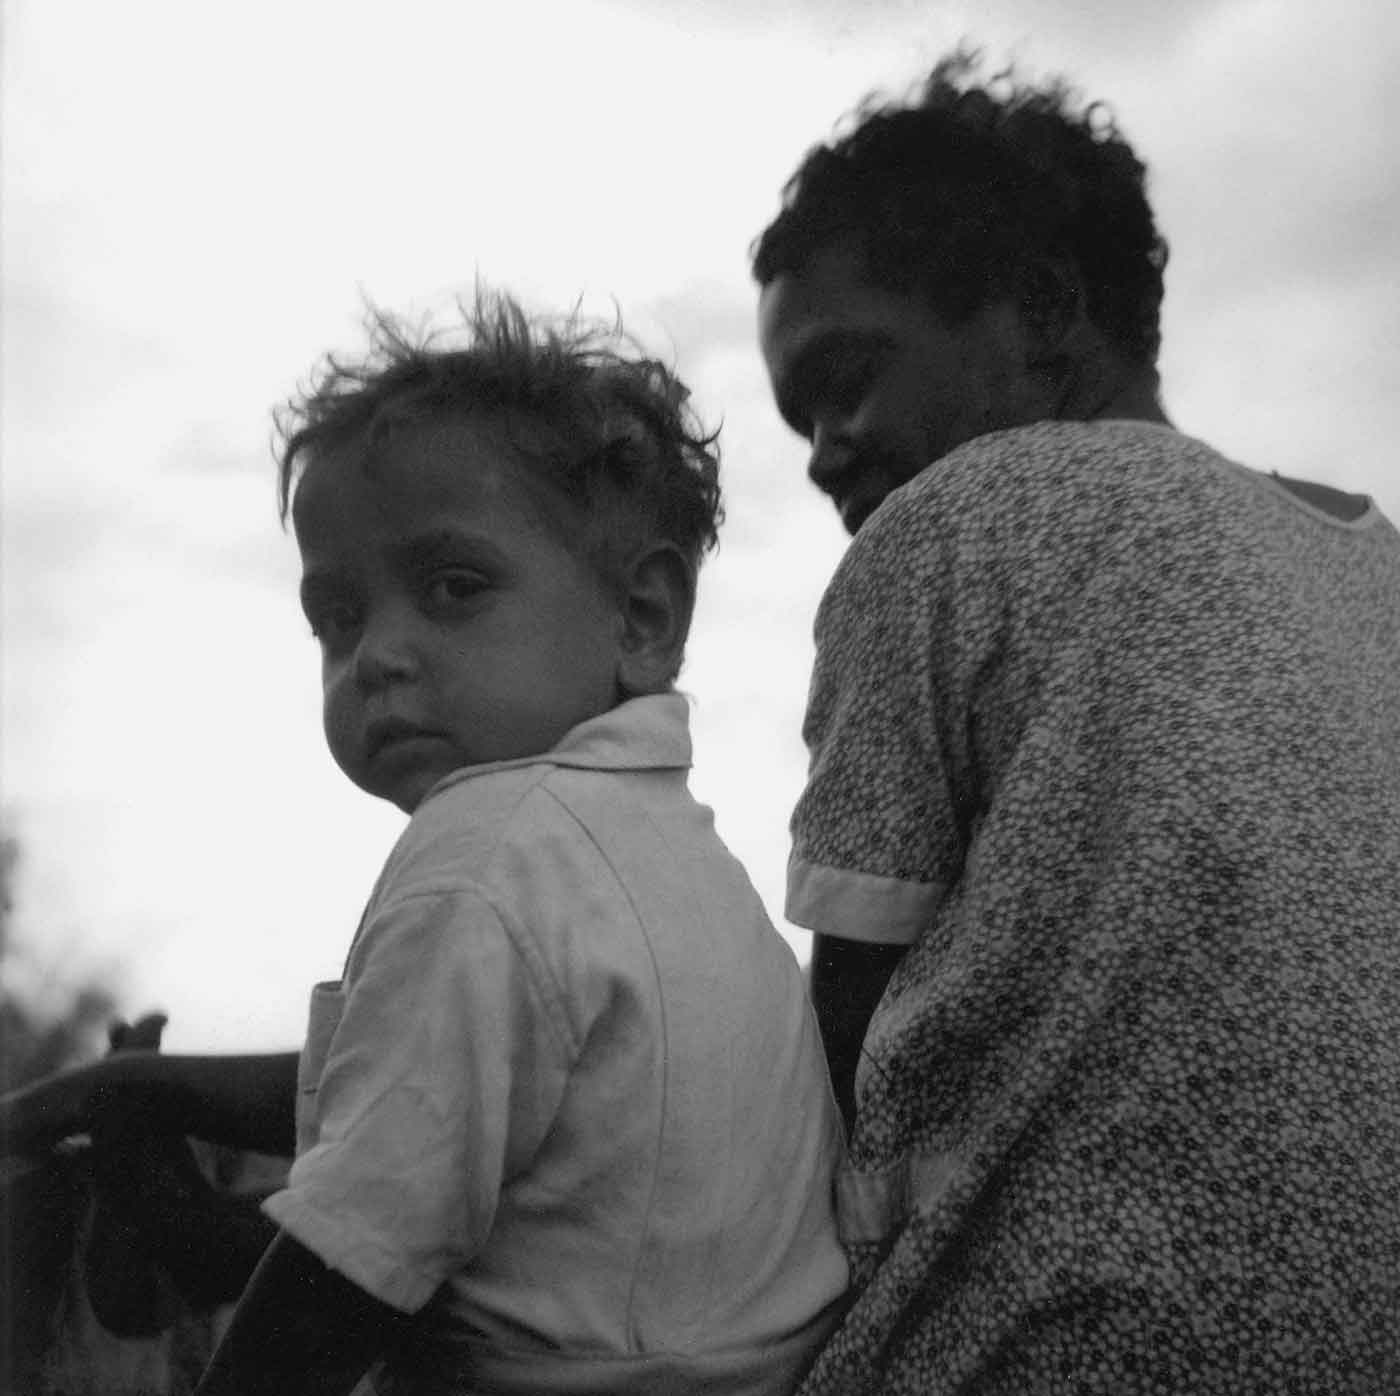 Black and white photo of a young First Australian boy seated next to a First Australian woman. - click to view larger image